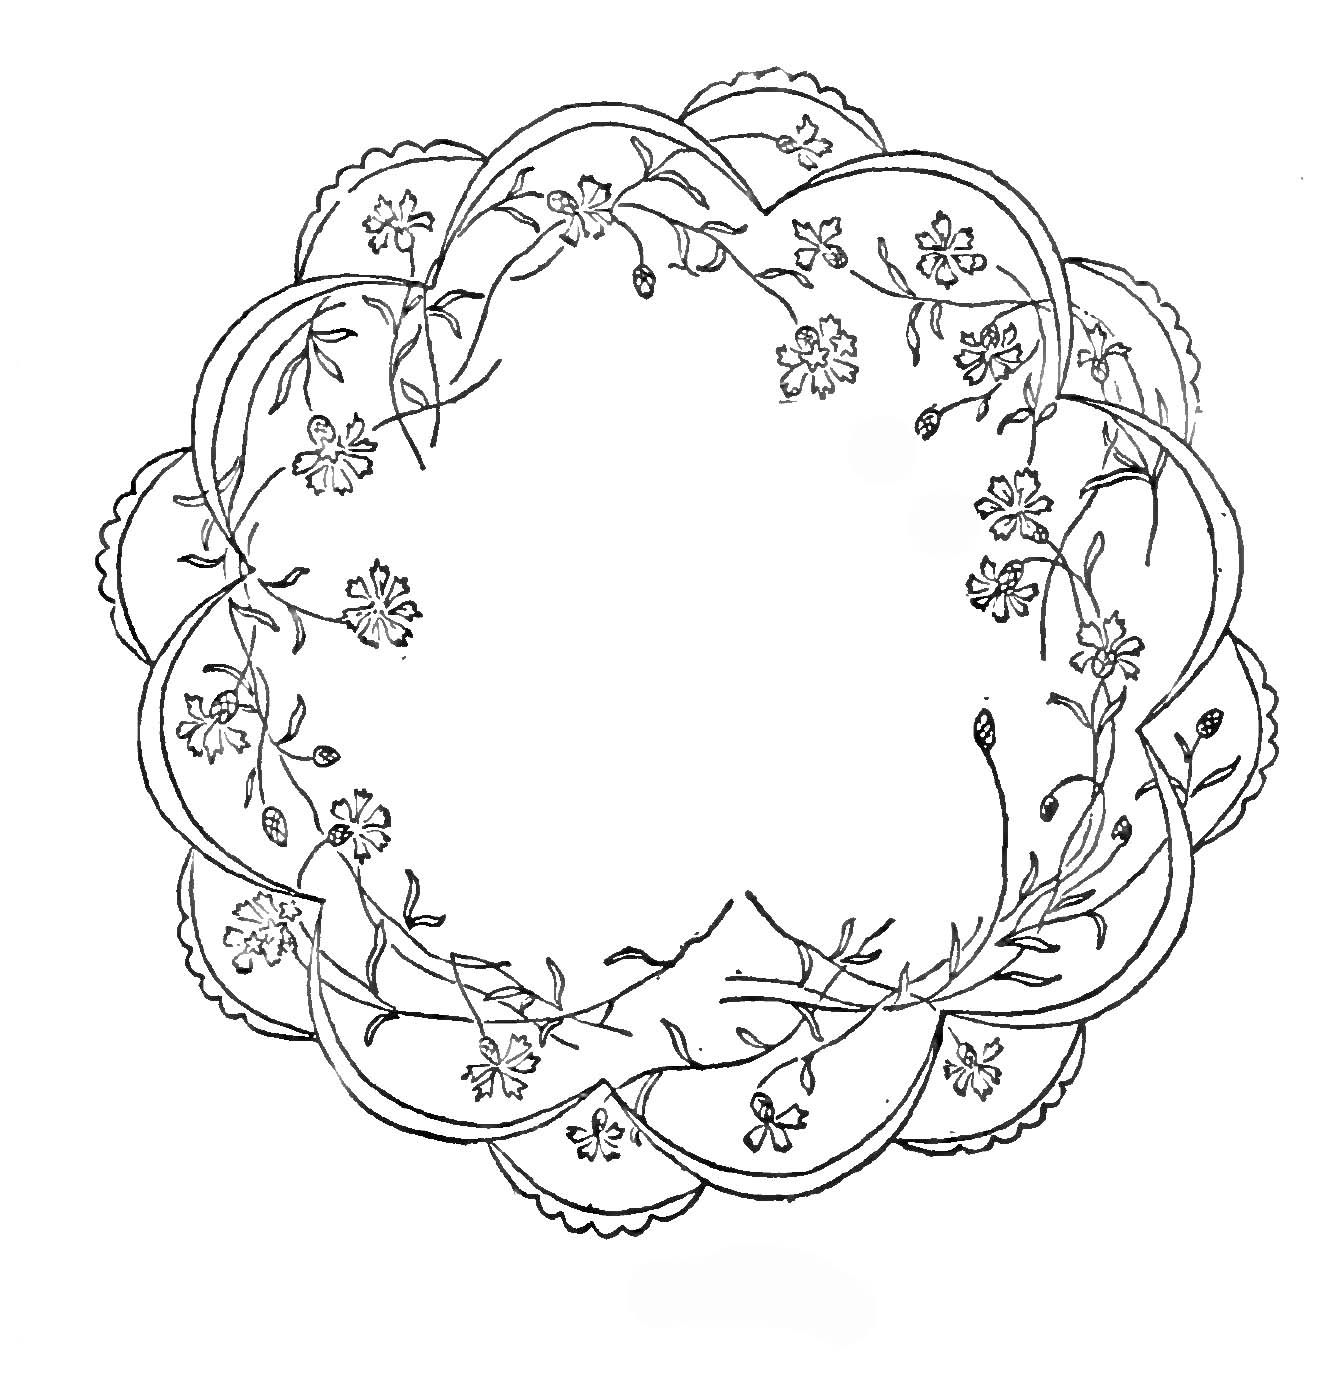 Embroidery Pattern   Wow Embroidery   Pinterest   Embroidery ...